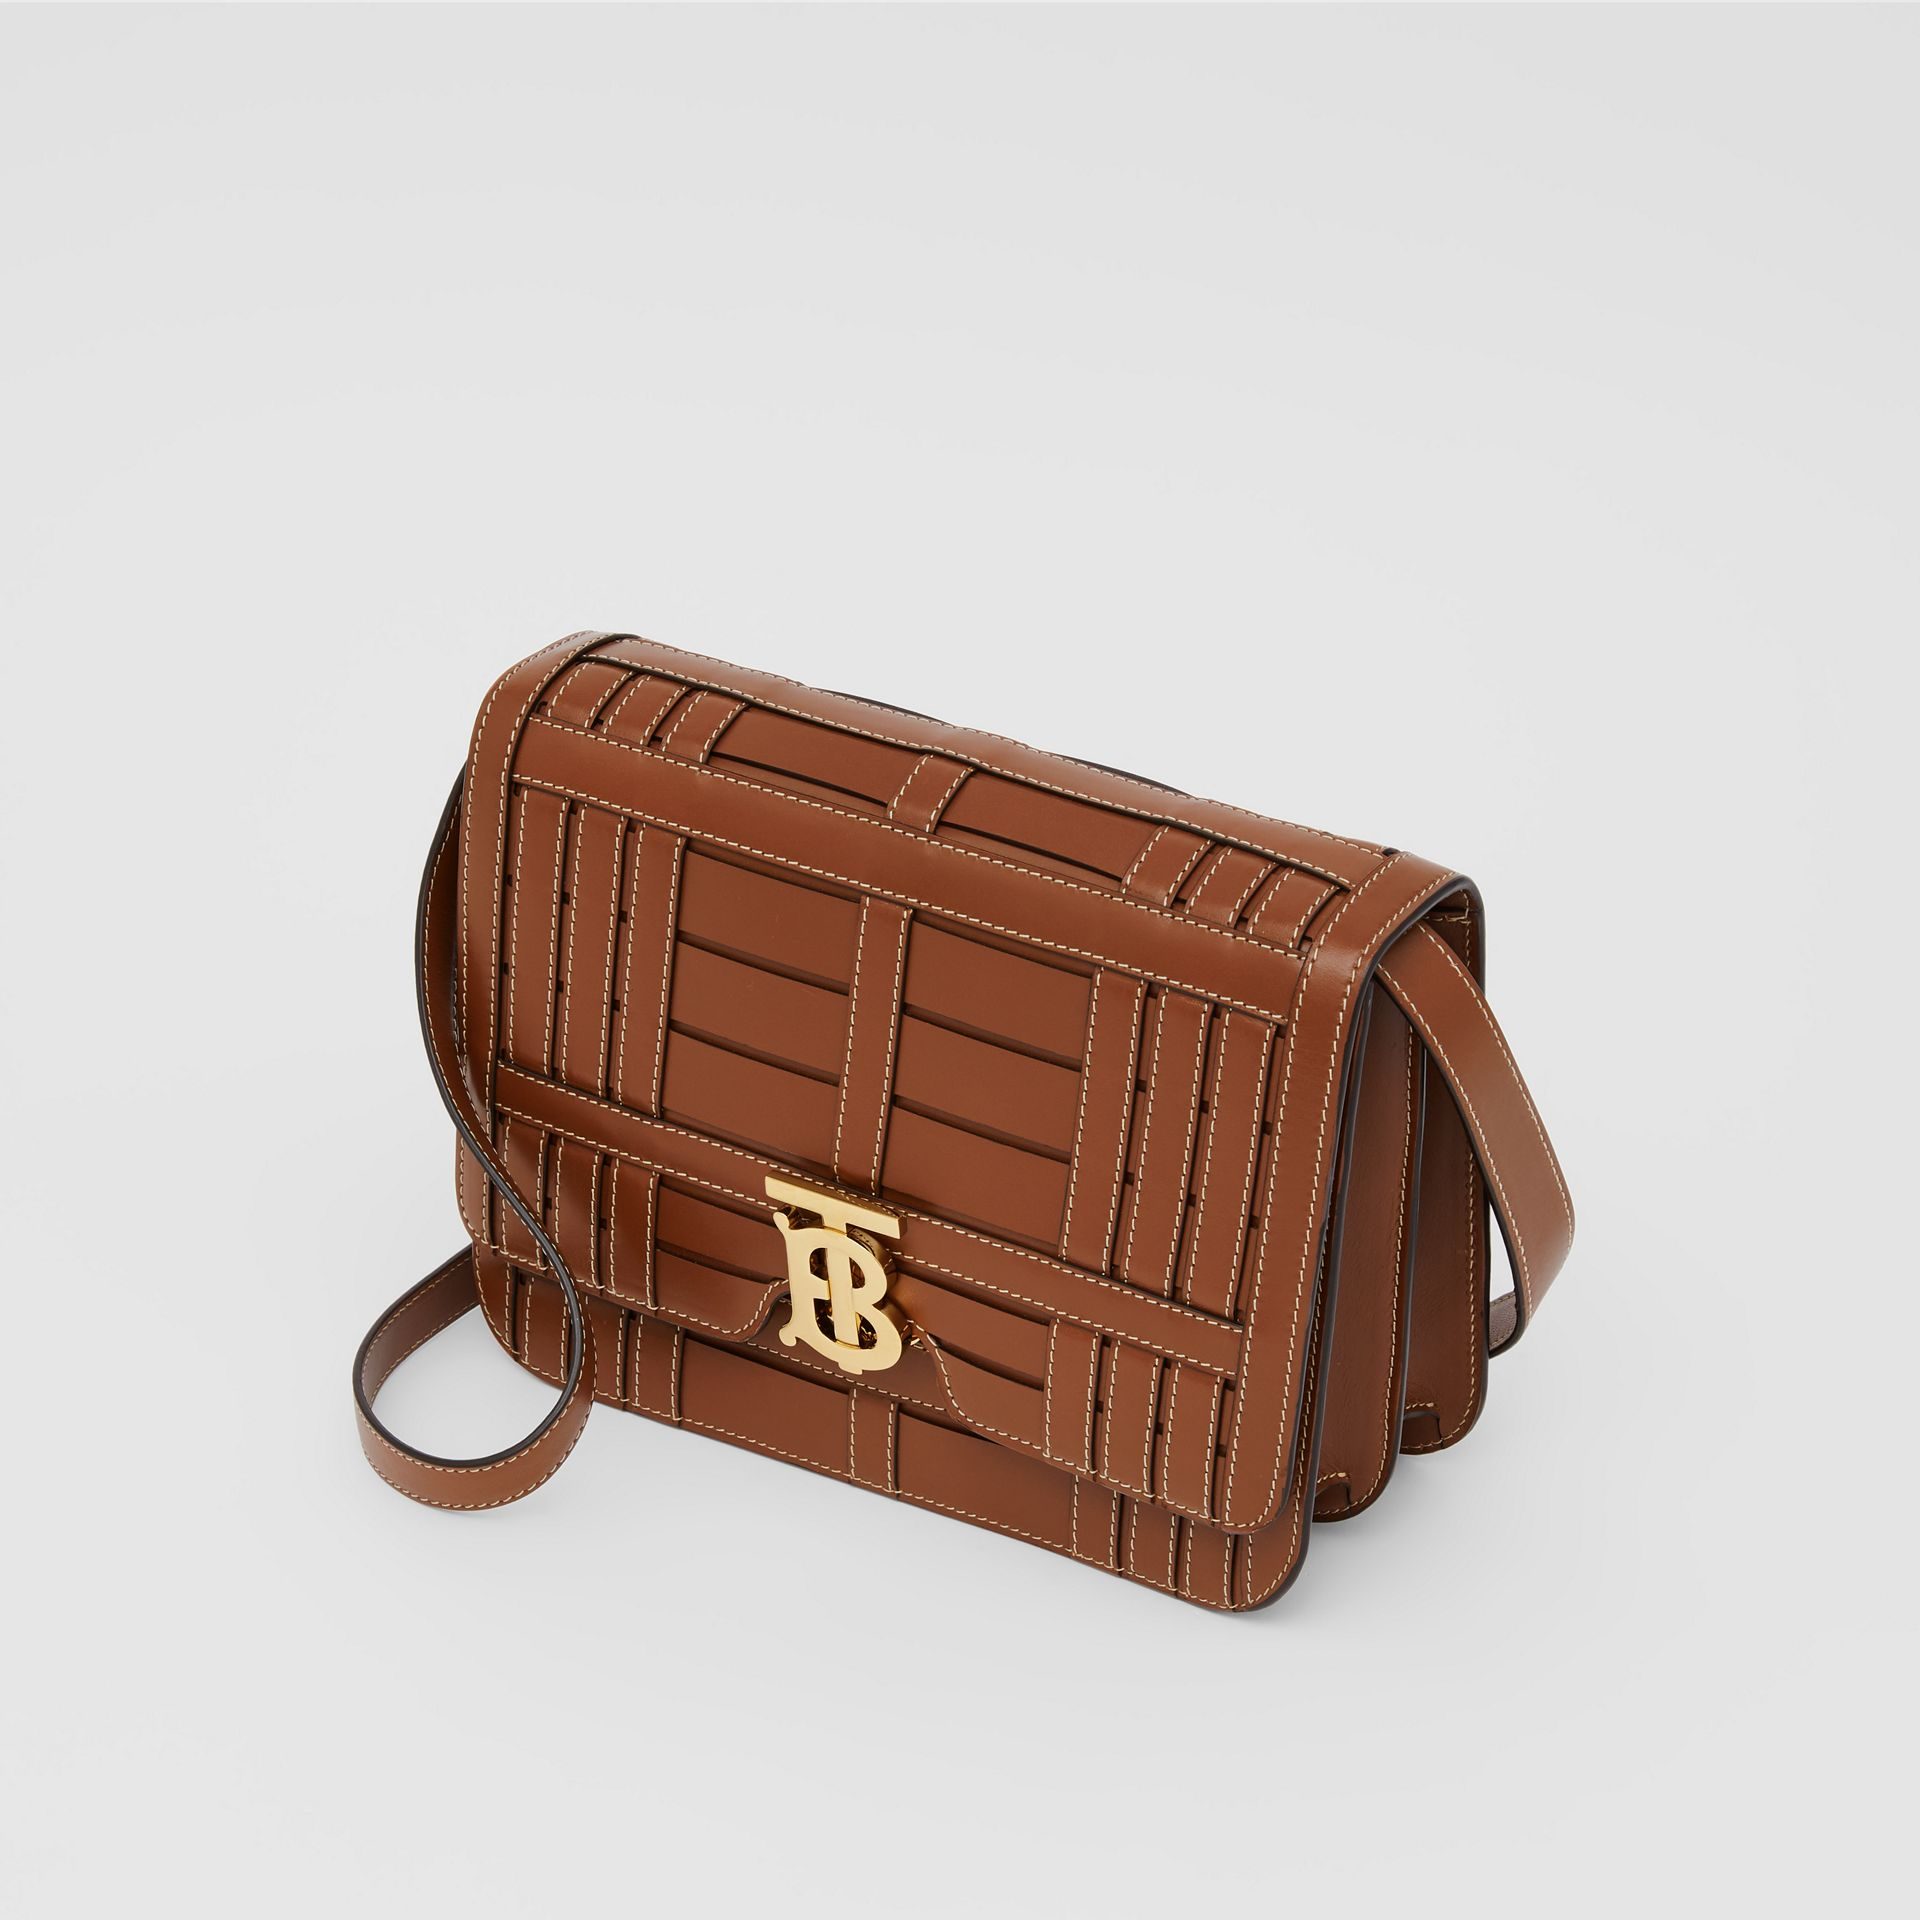 Medium Woven Leather TB Bag in Tan - Women | Burberry Canada - gallery image 3